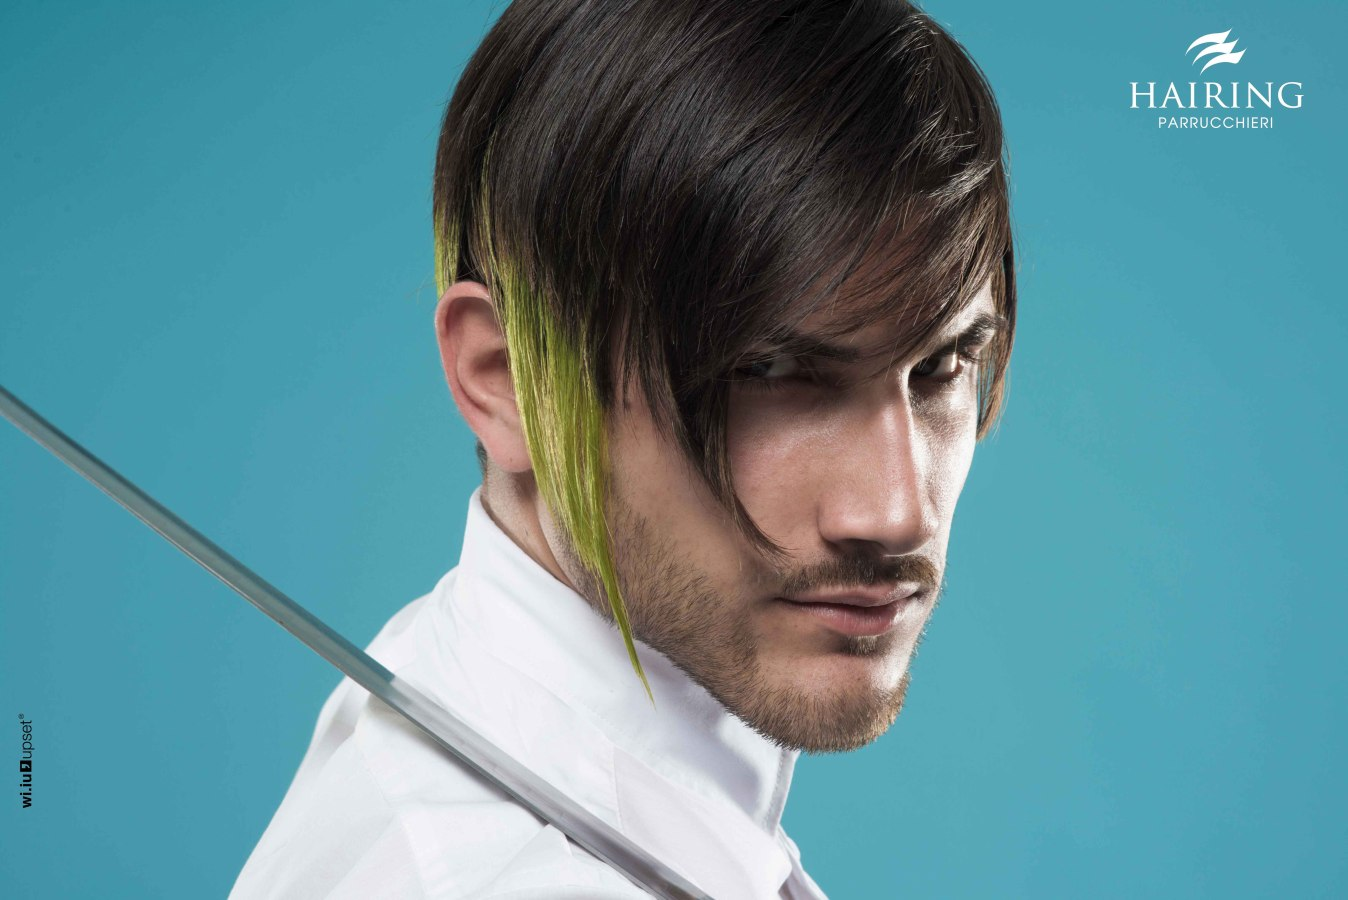 extravagant hairstyle for men